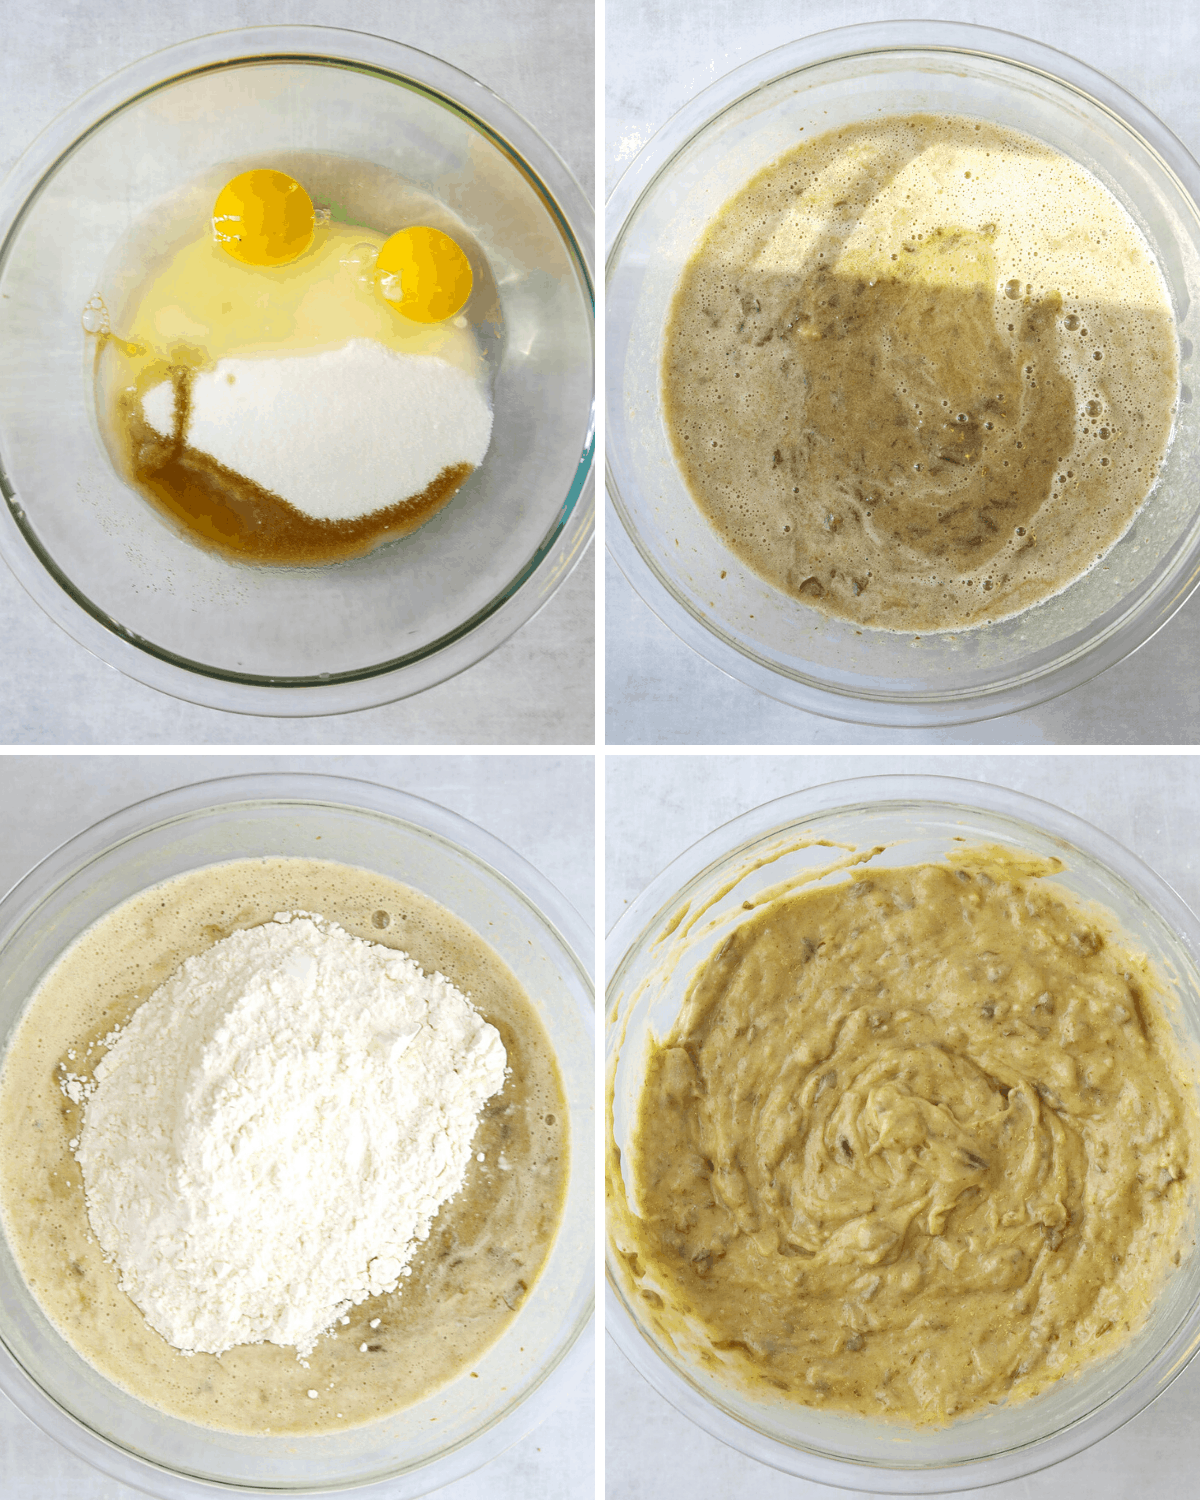 four photos step by step of date cake batter being made in a large glass mixing bowl